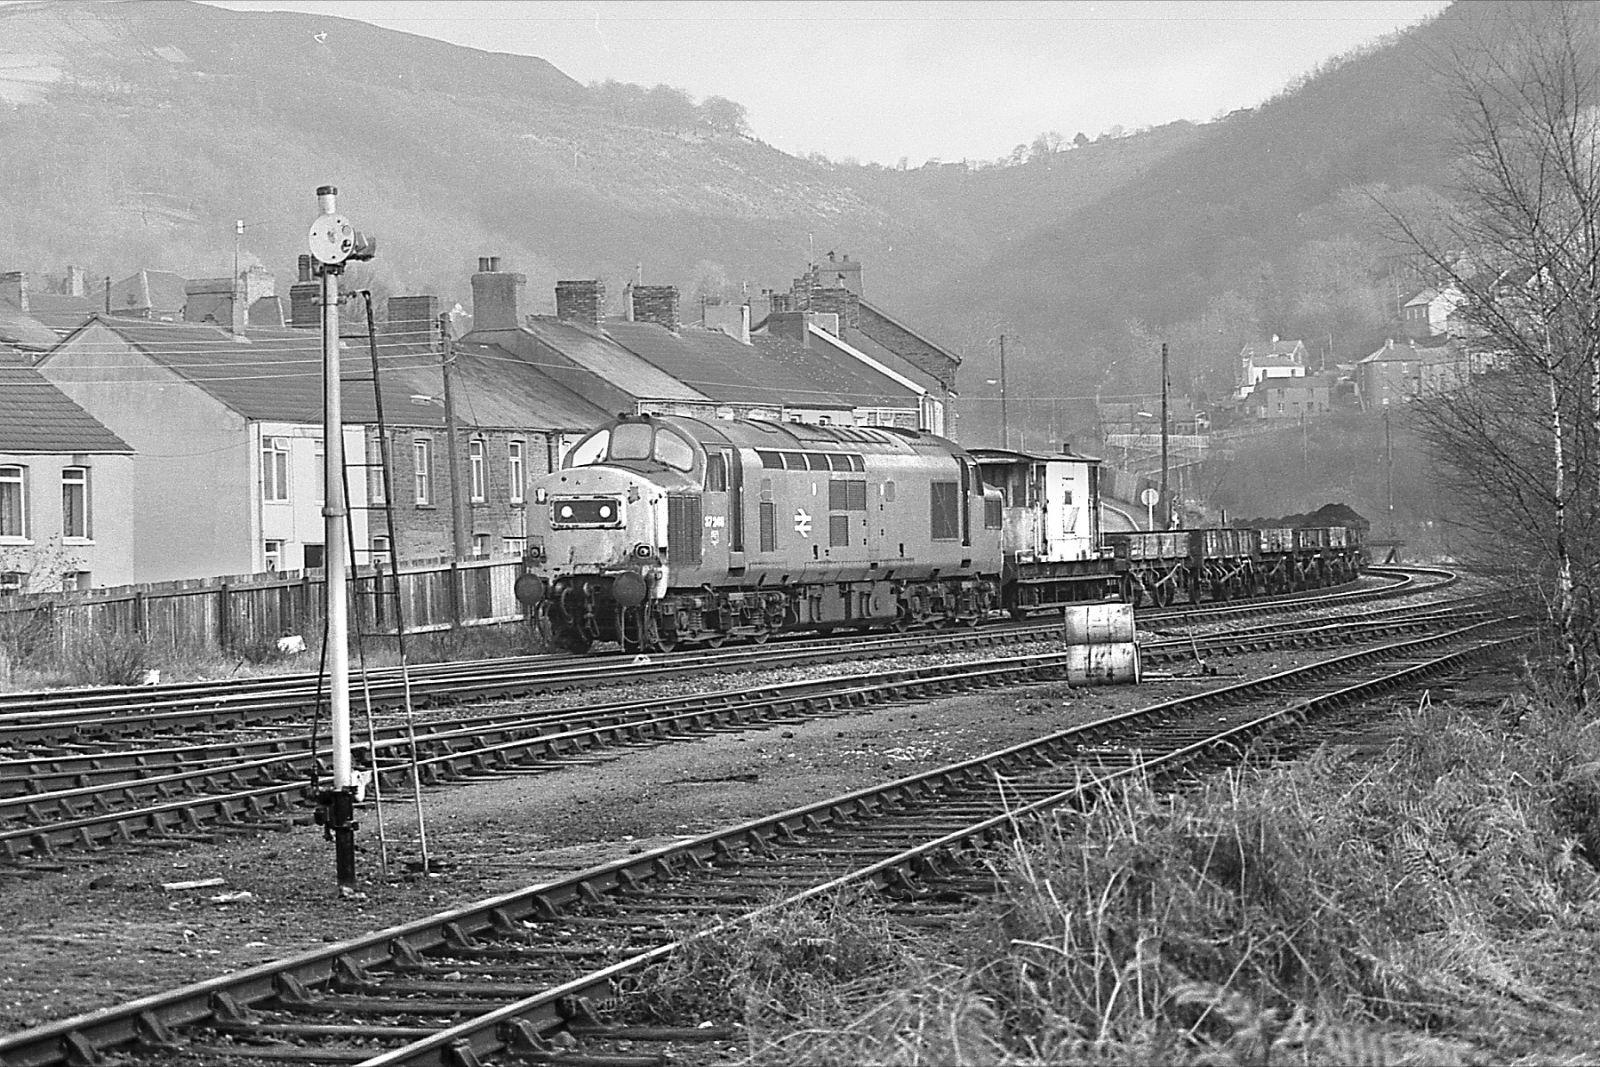 37248-on-engineers-train-abercarn-gwent-on-sunday-06-12-1981